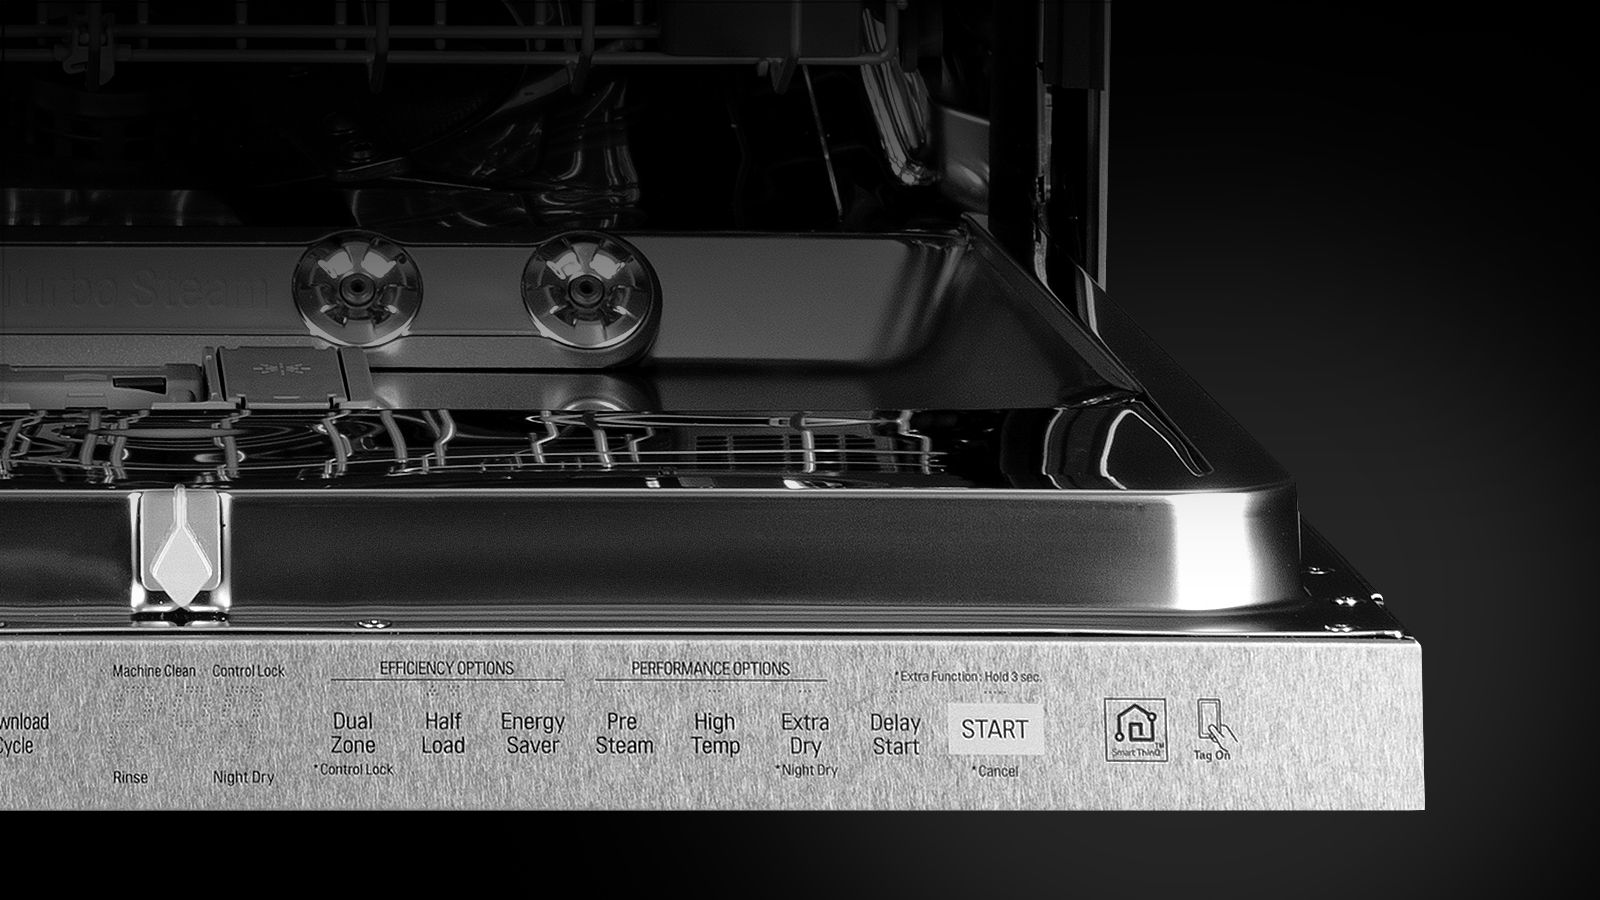 Lg Signature Built In Dishwasher Dishwasher Fast Cleaning